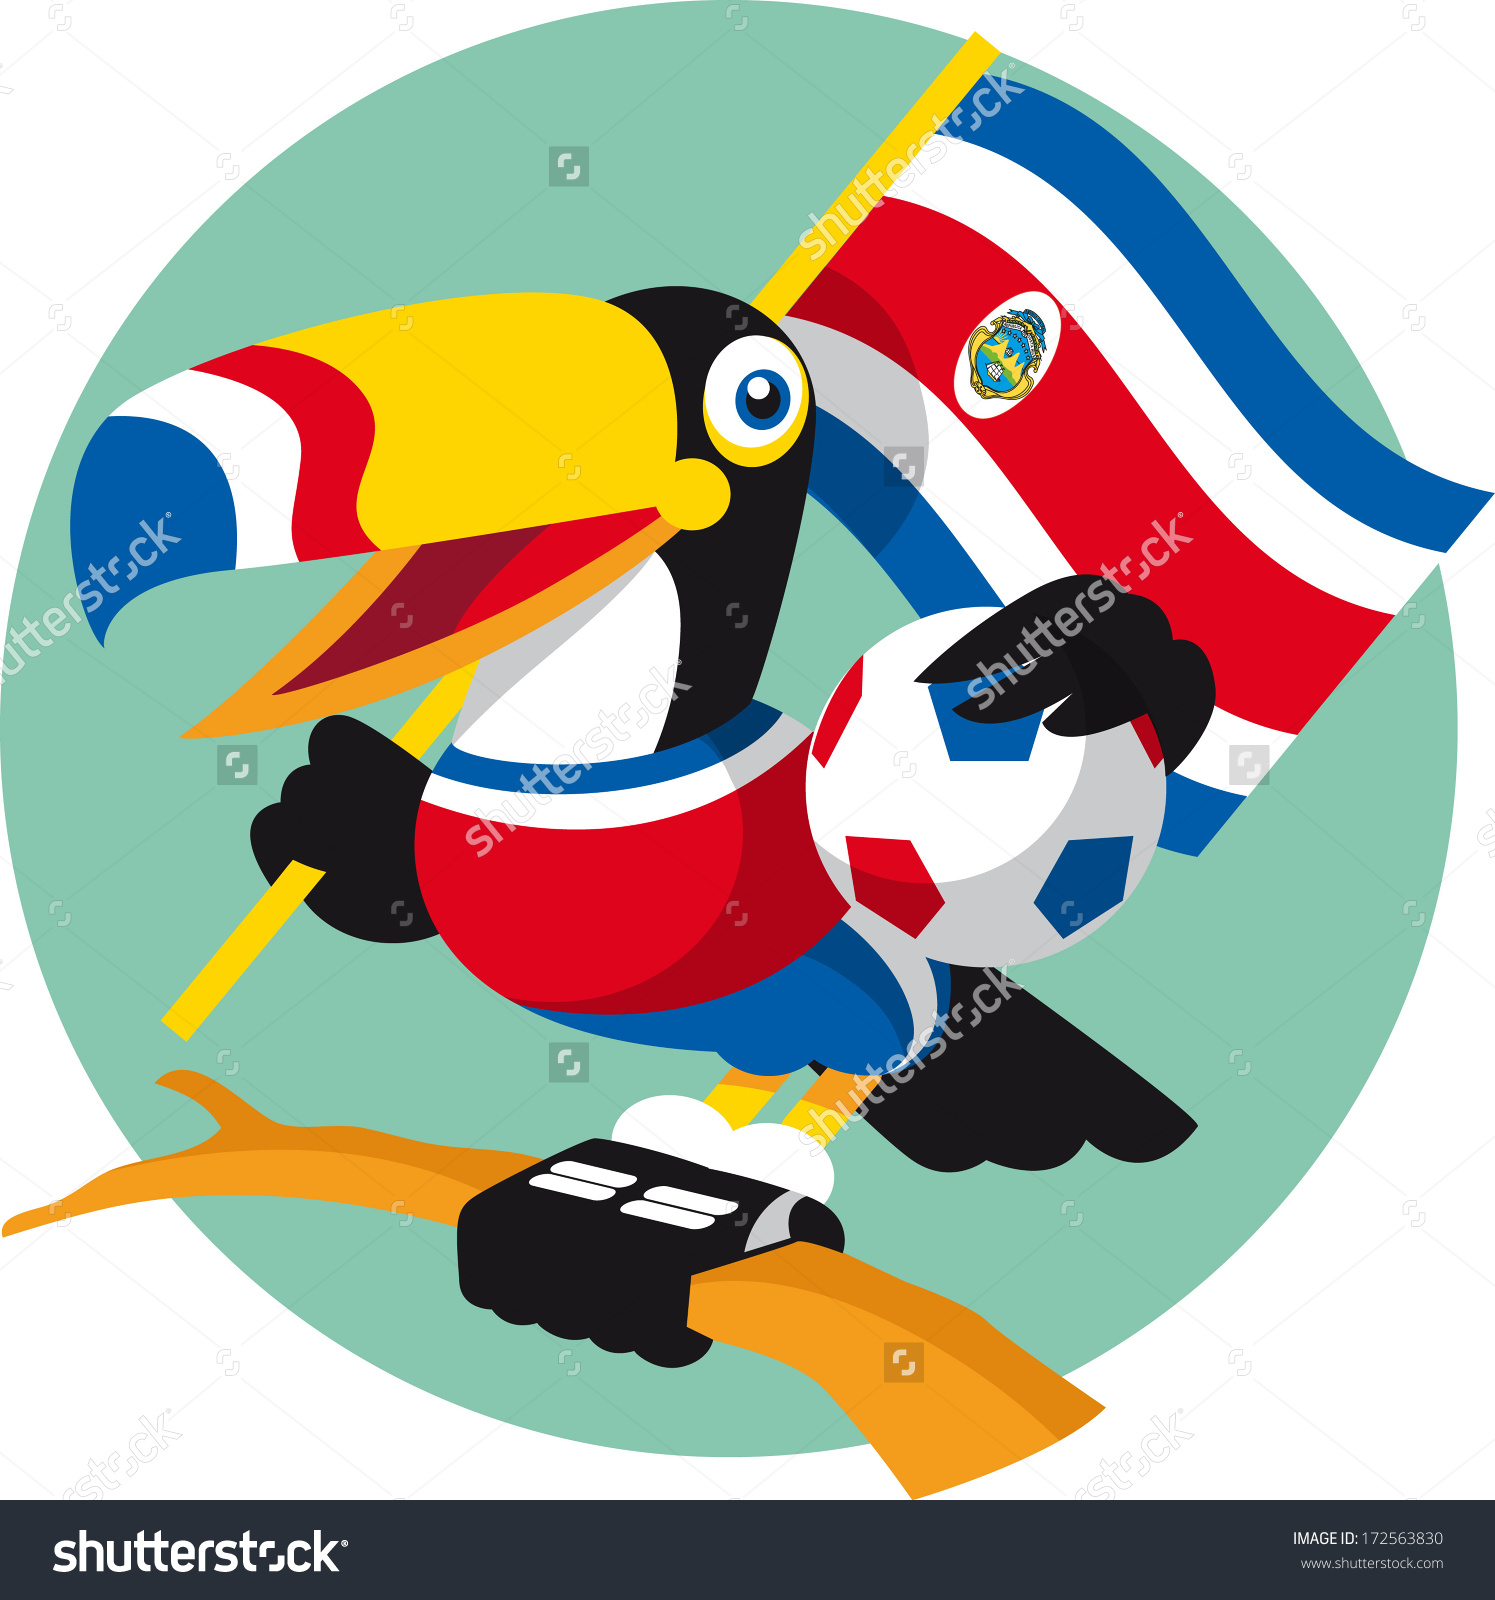 Costa Rica clipart #4, Download drawings